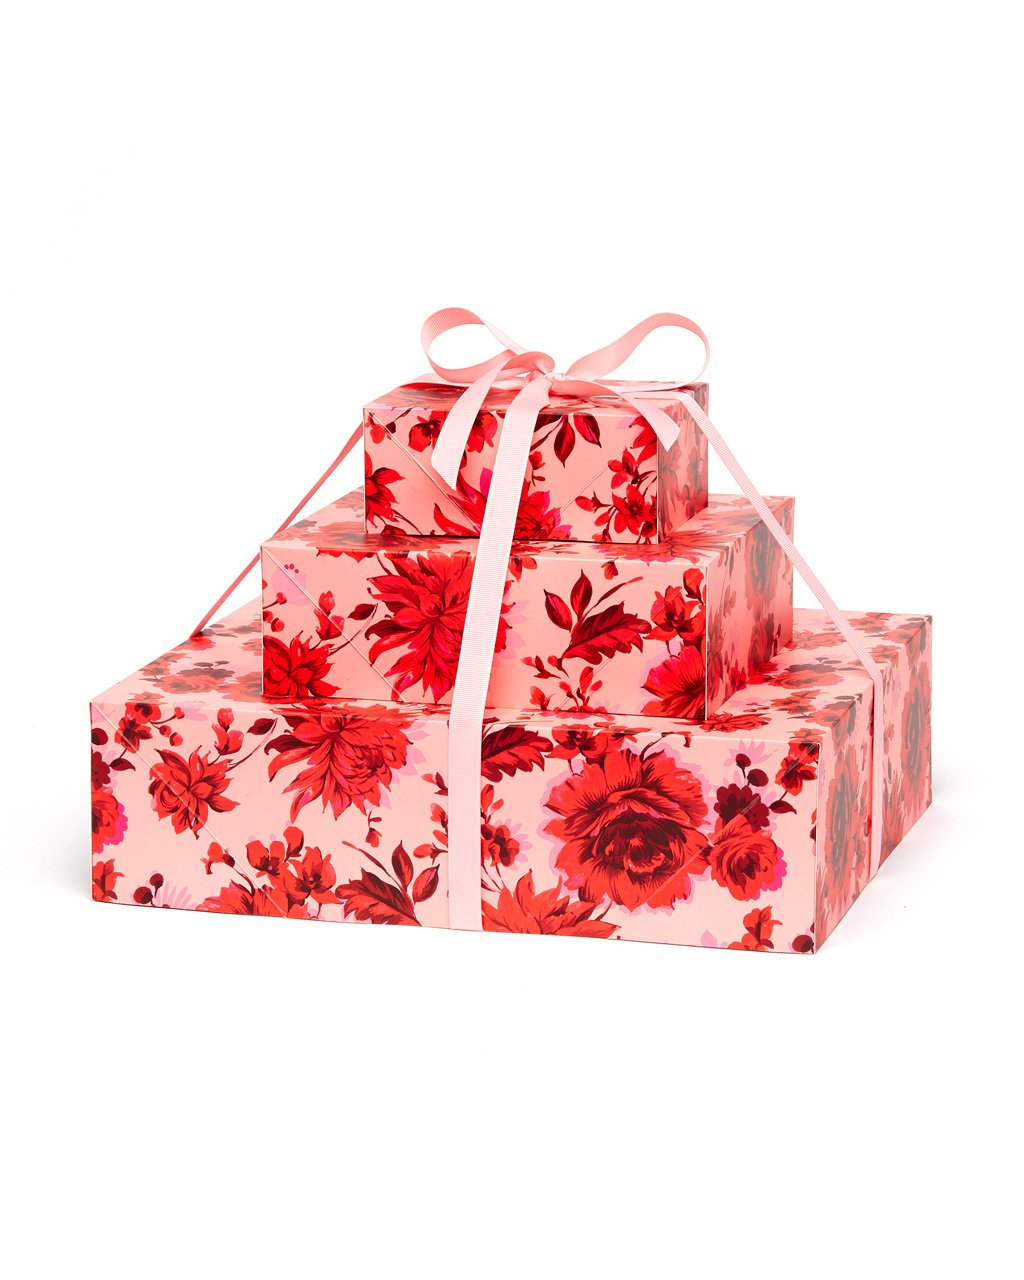 w// Ribbon Pack of 8 30 in x 5 Ft Roll Gift Wrap Paper